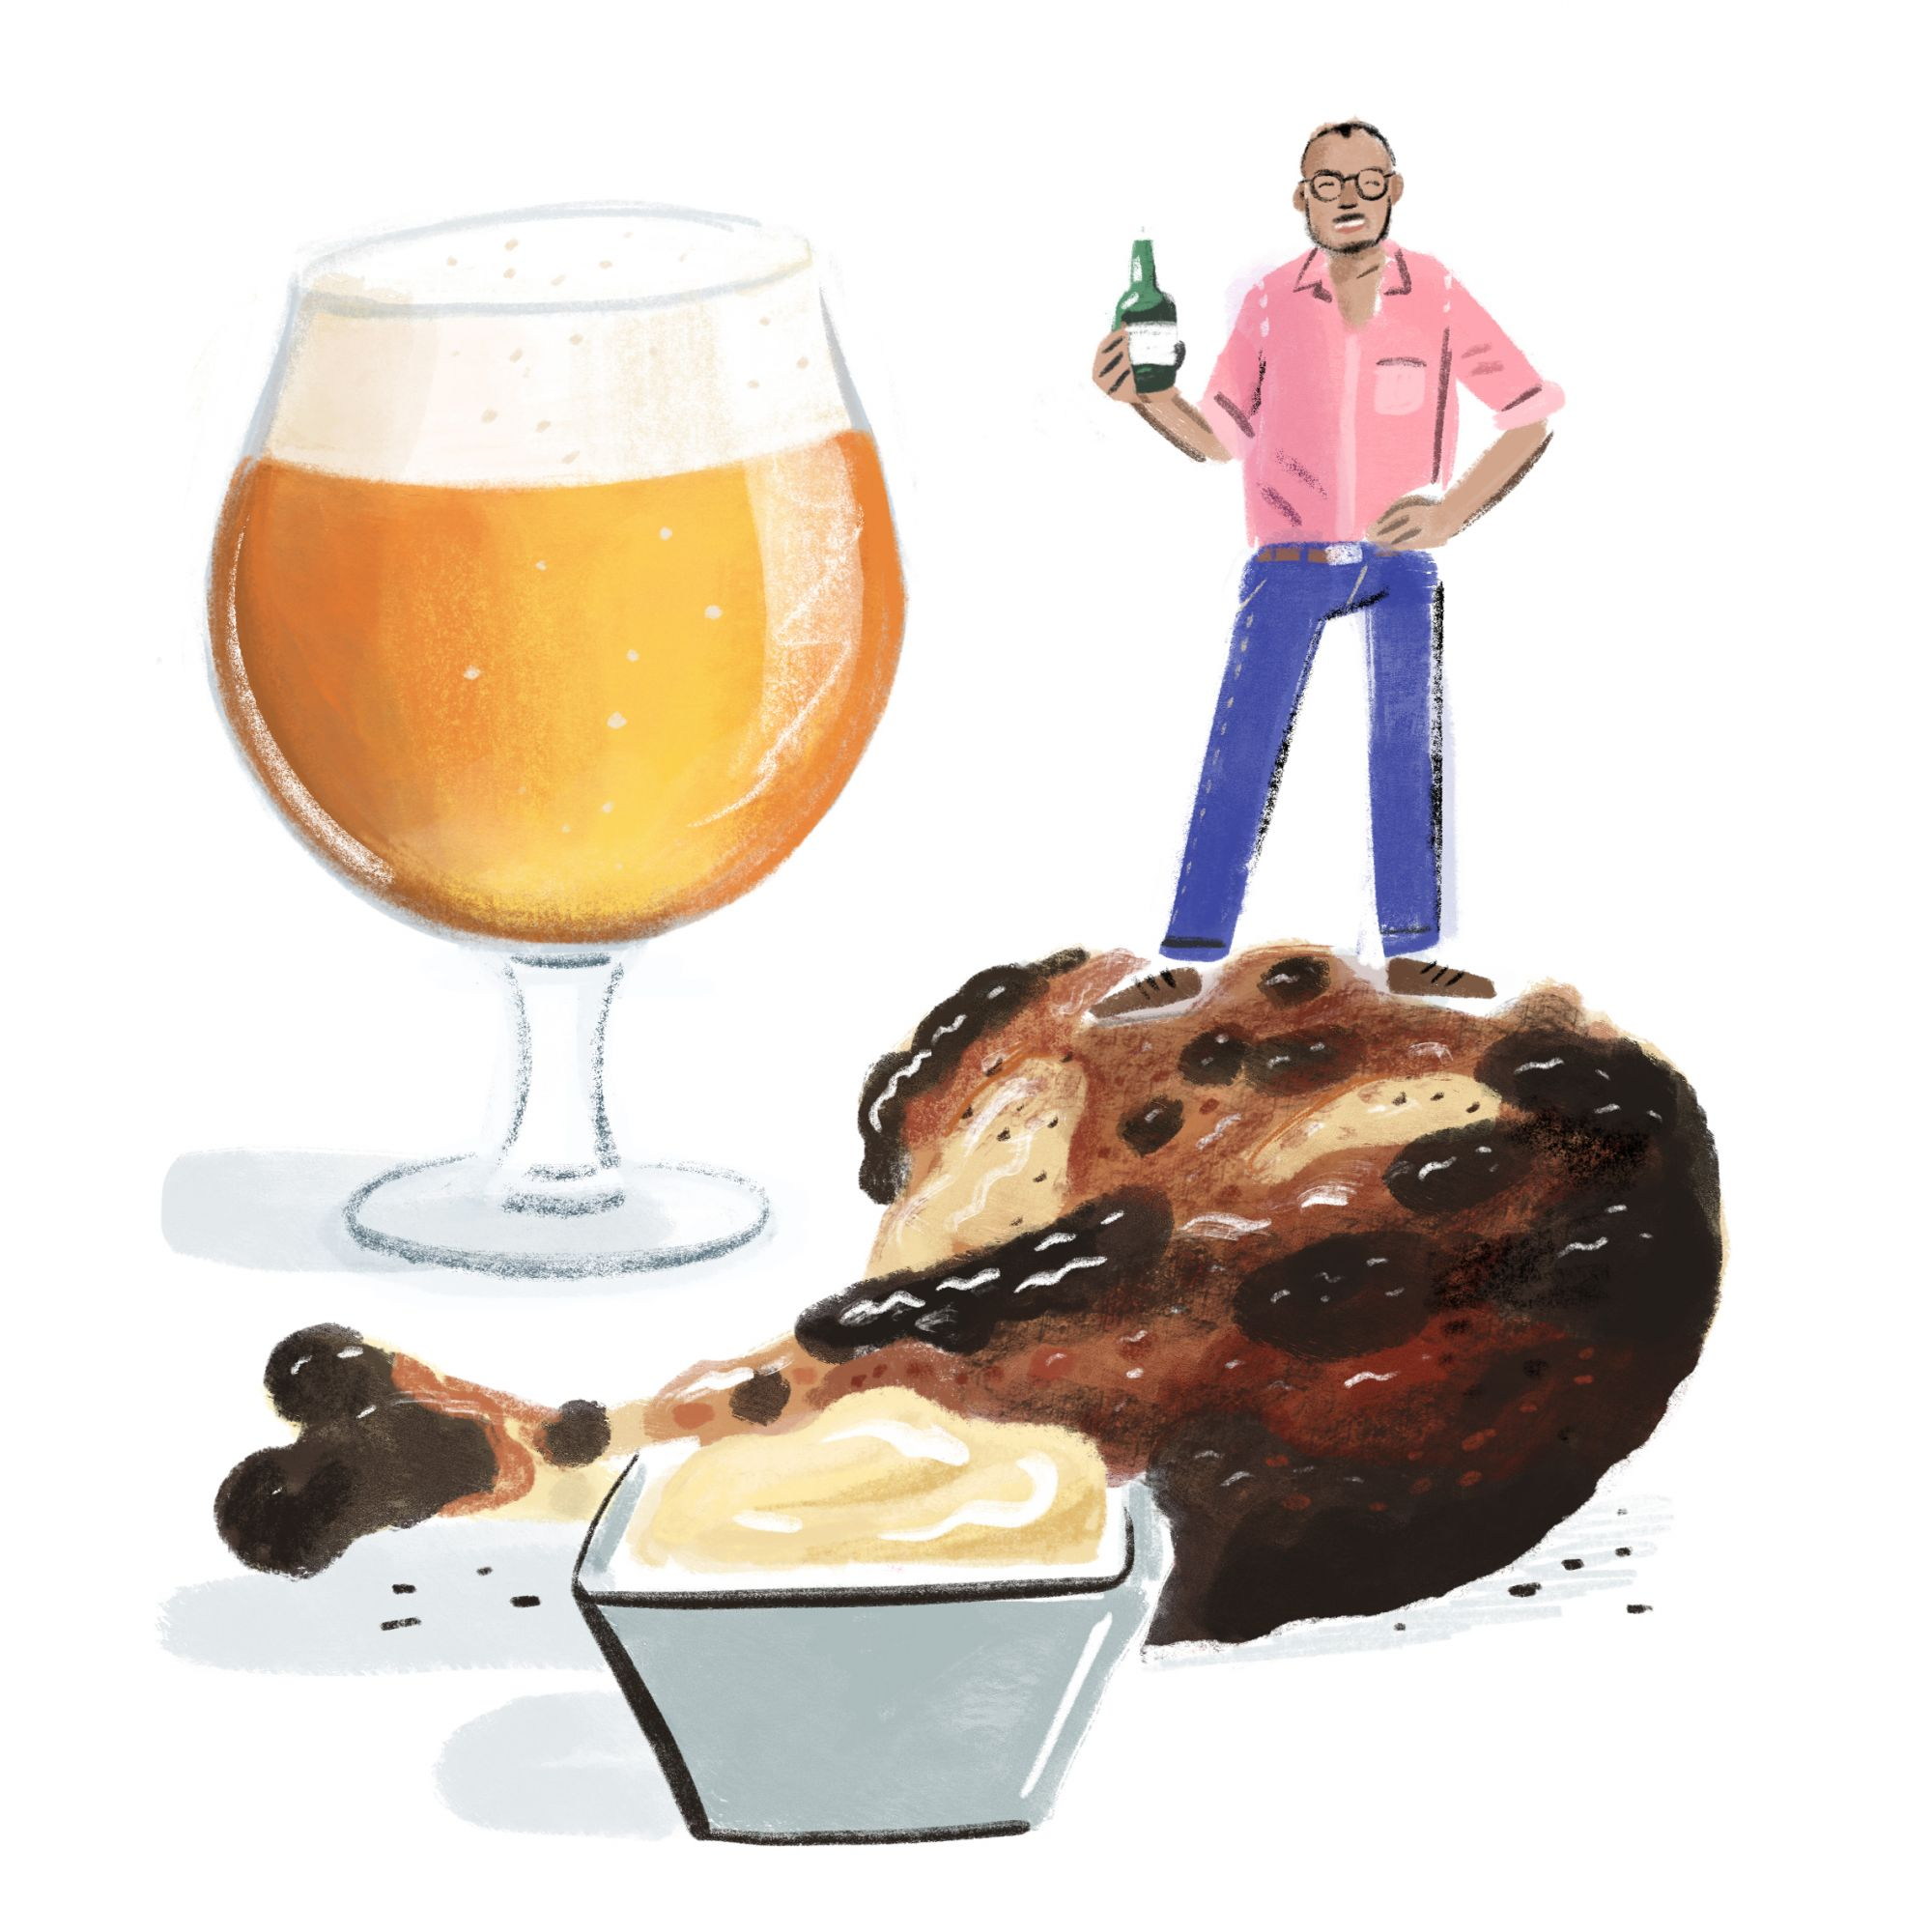 Rohit Dugar Of Young Master Brewery On His Obsession With Fermented Tofu